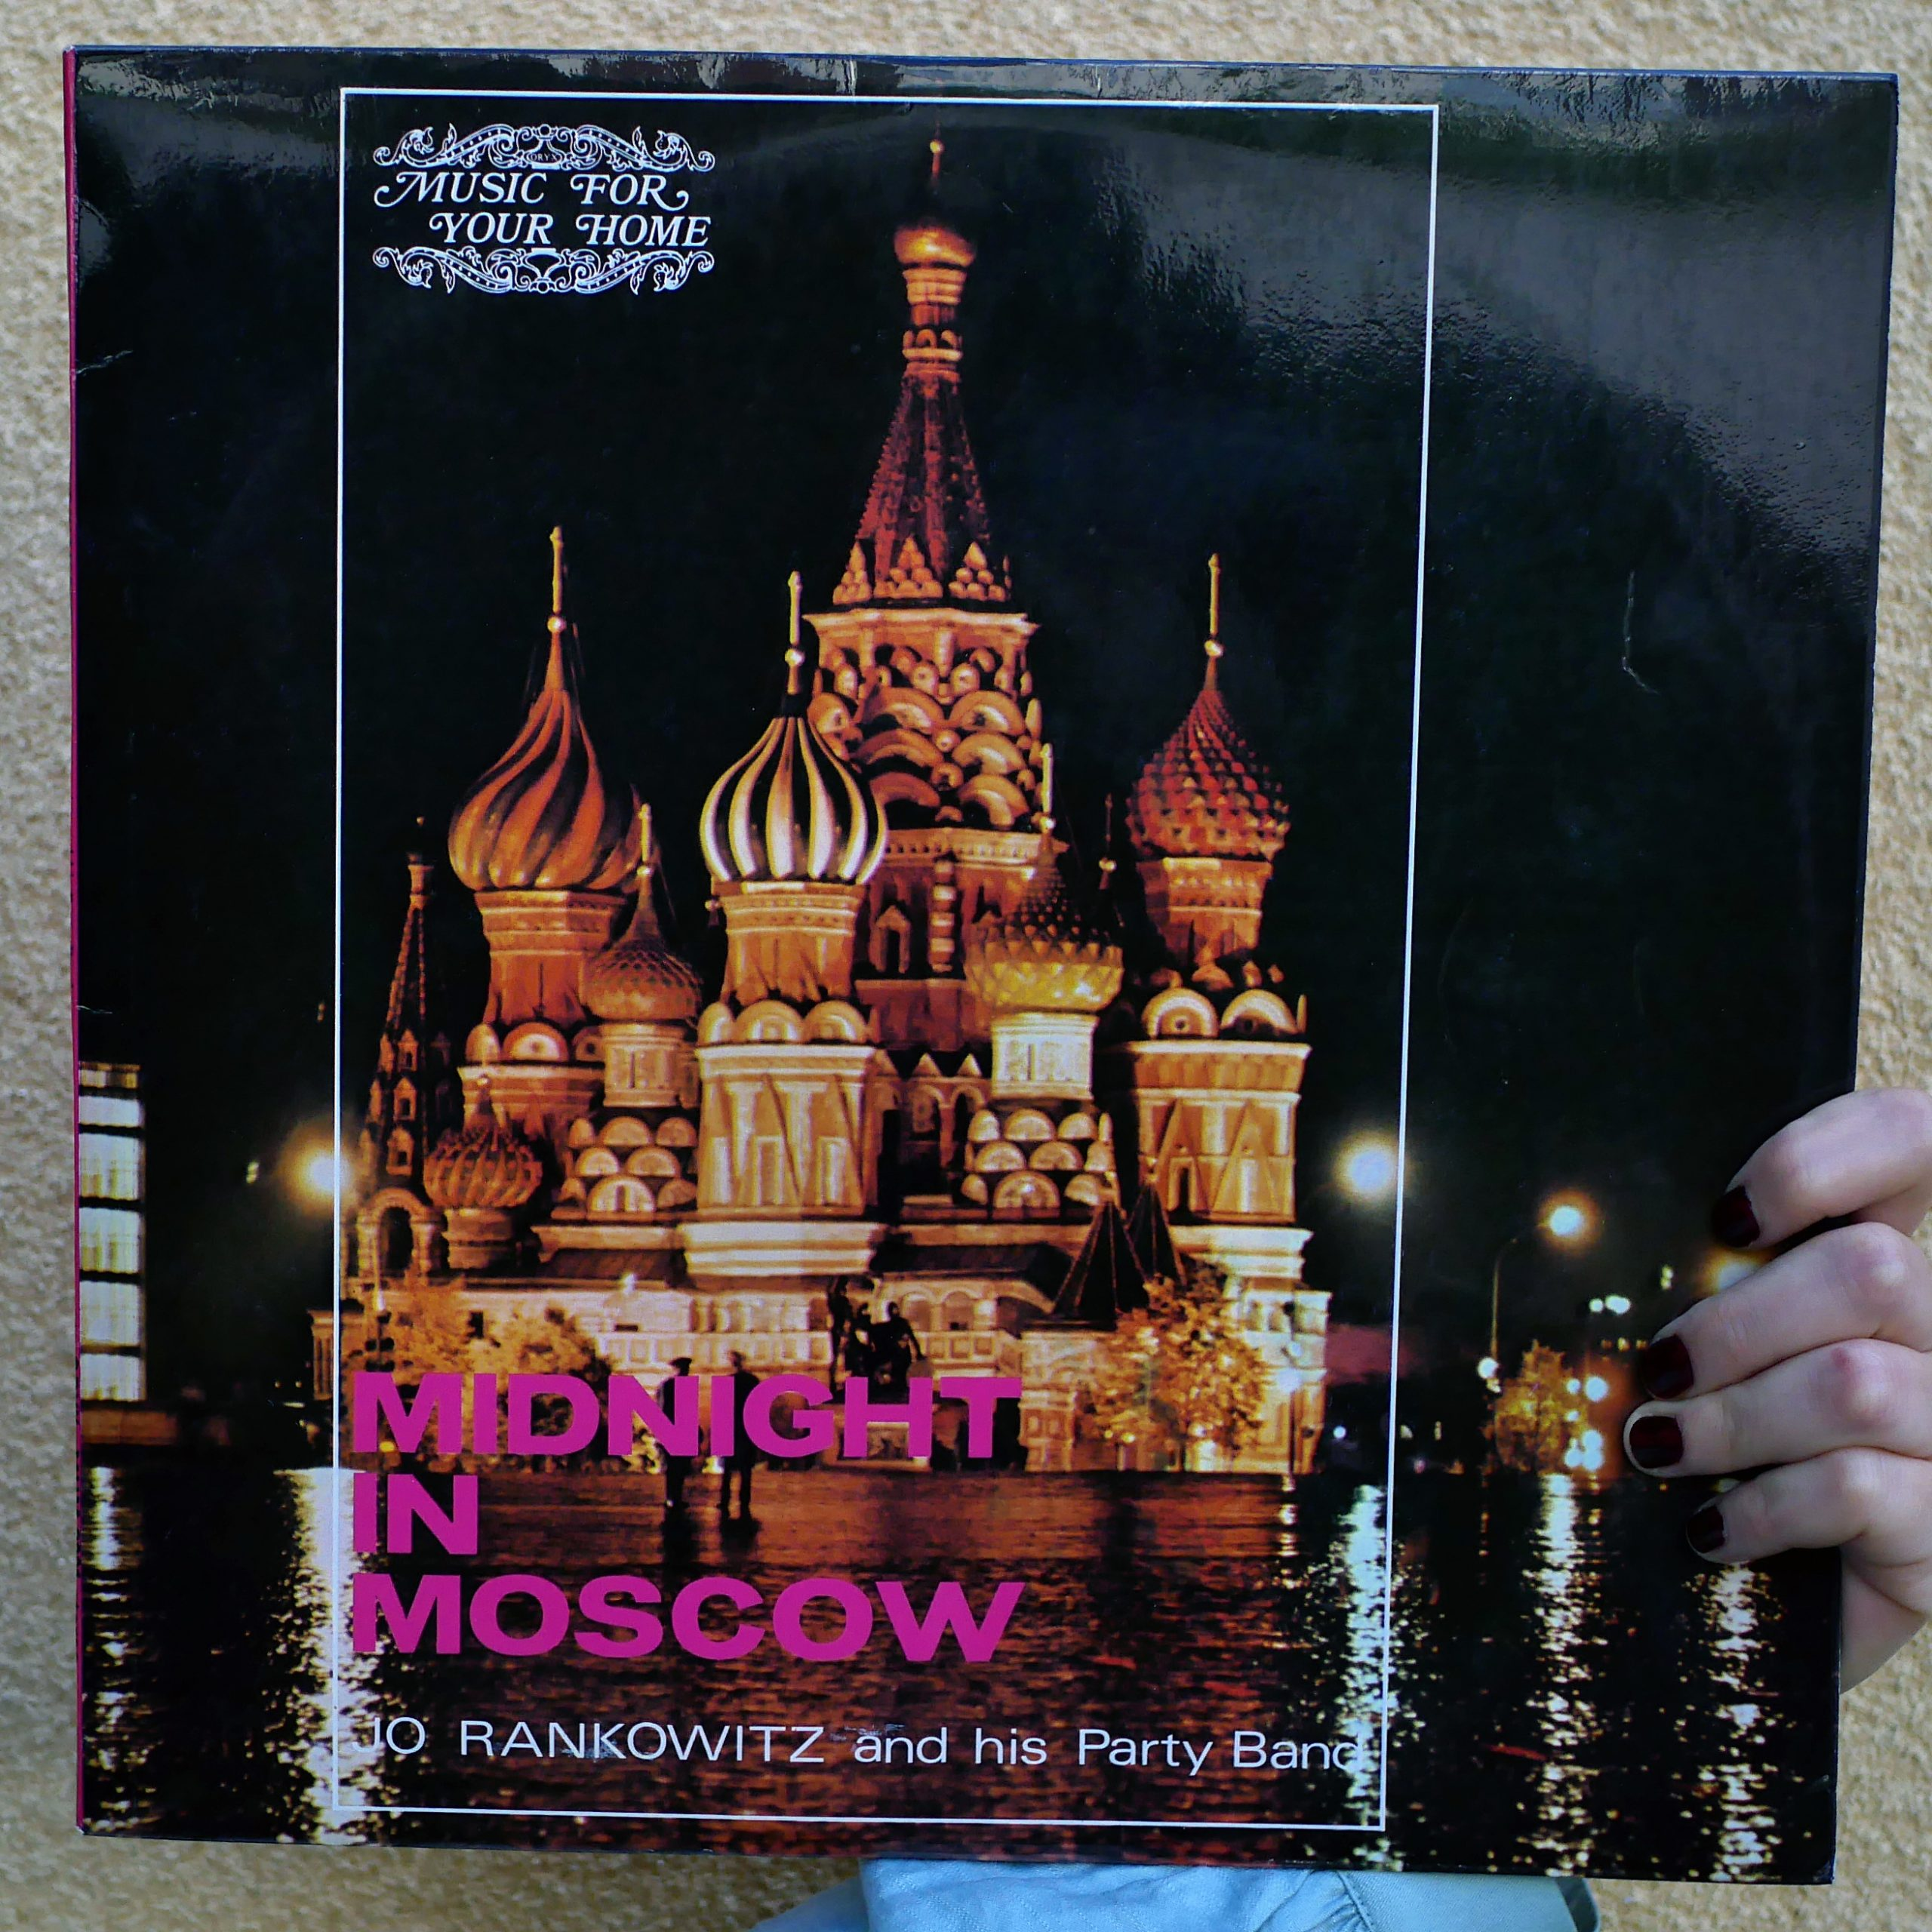 Jo Rankowitz and his Party Band – Midnight in Moscow [LP]